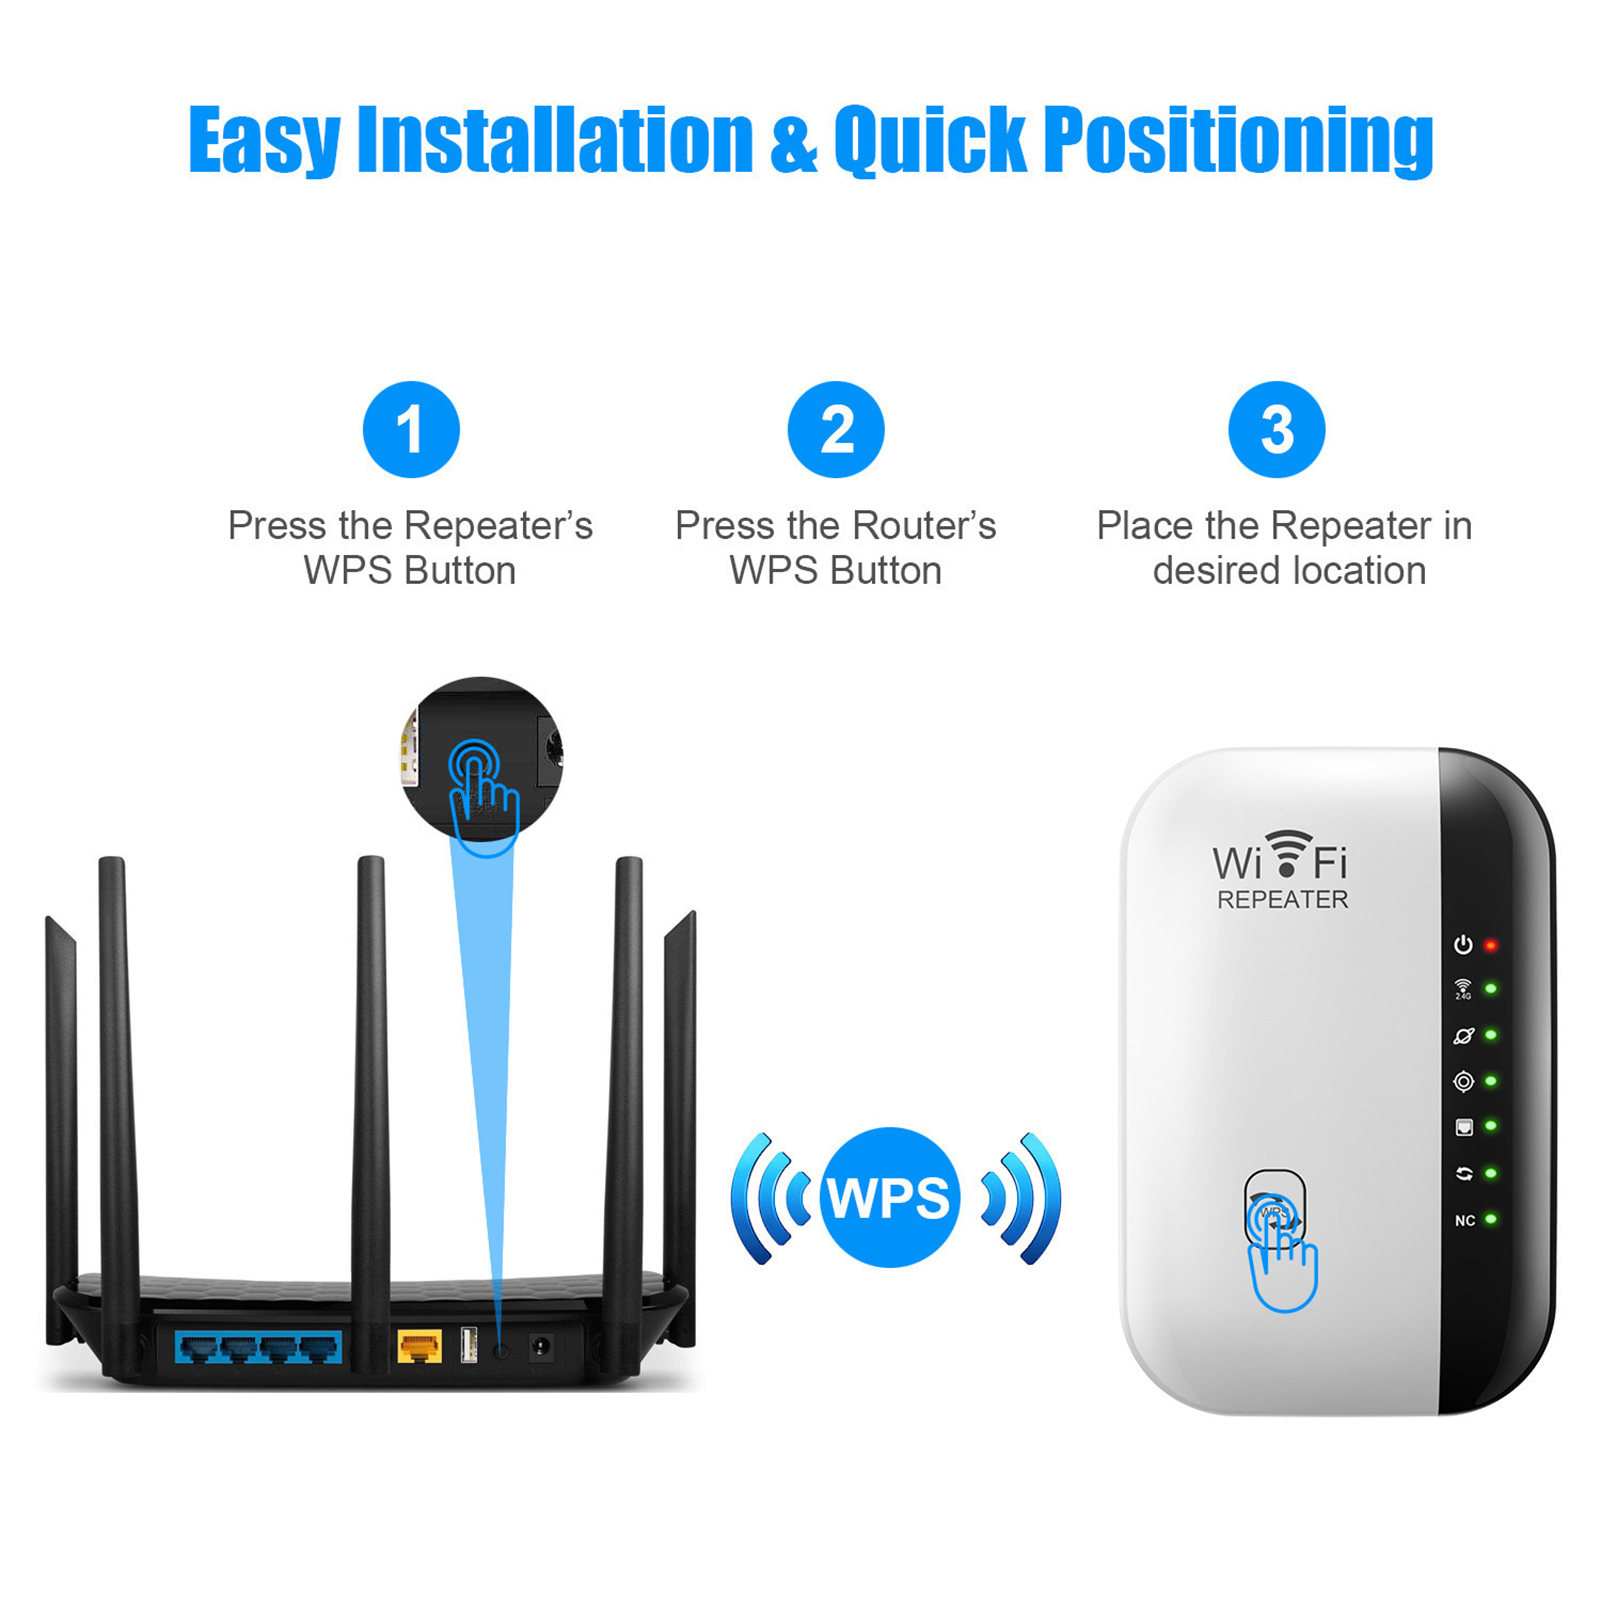 Wireless Wifi Repeater Wi-Fi Range Extender Router Wi Fi Signal Amplifier 300Mbps WiFi Booster 2.4G Wi Fi Reapeter Access Point 2